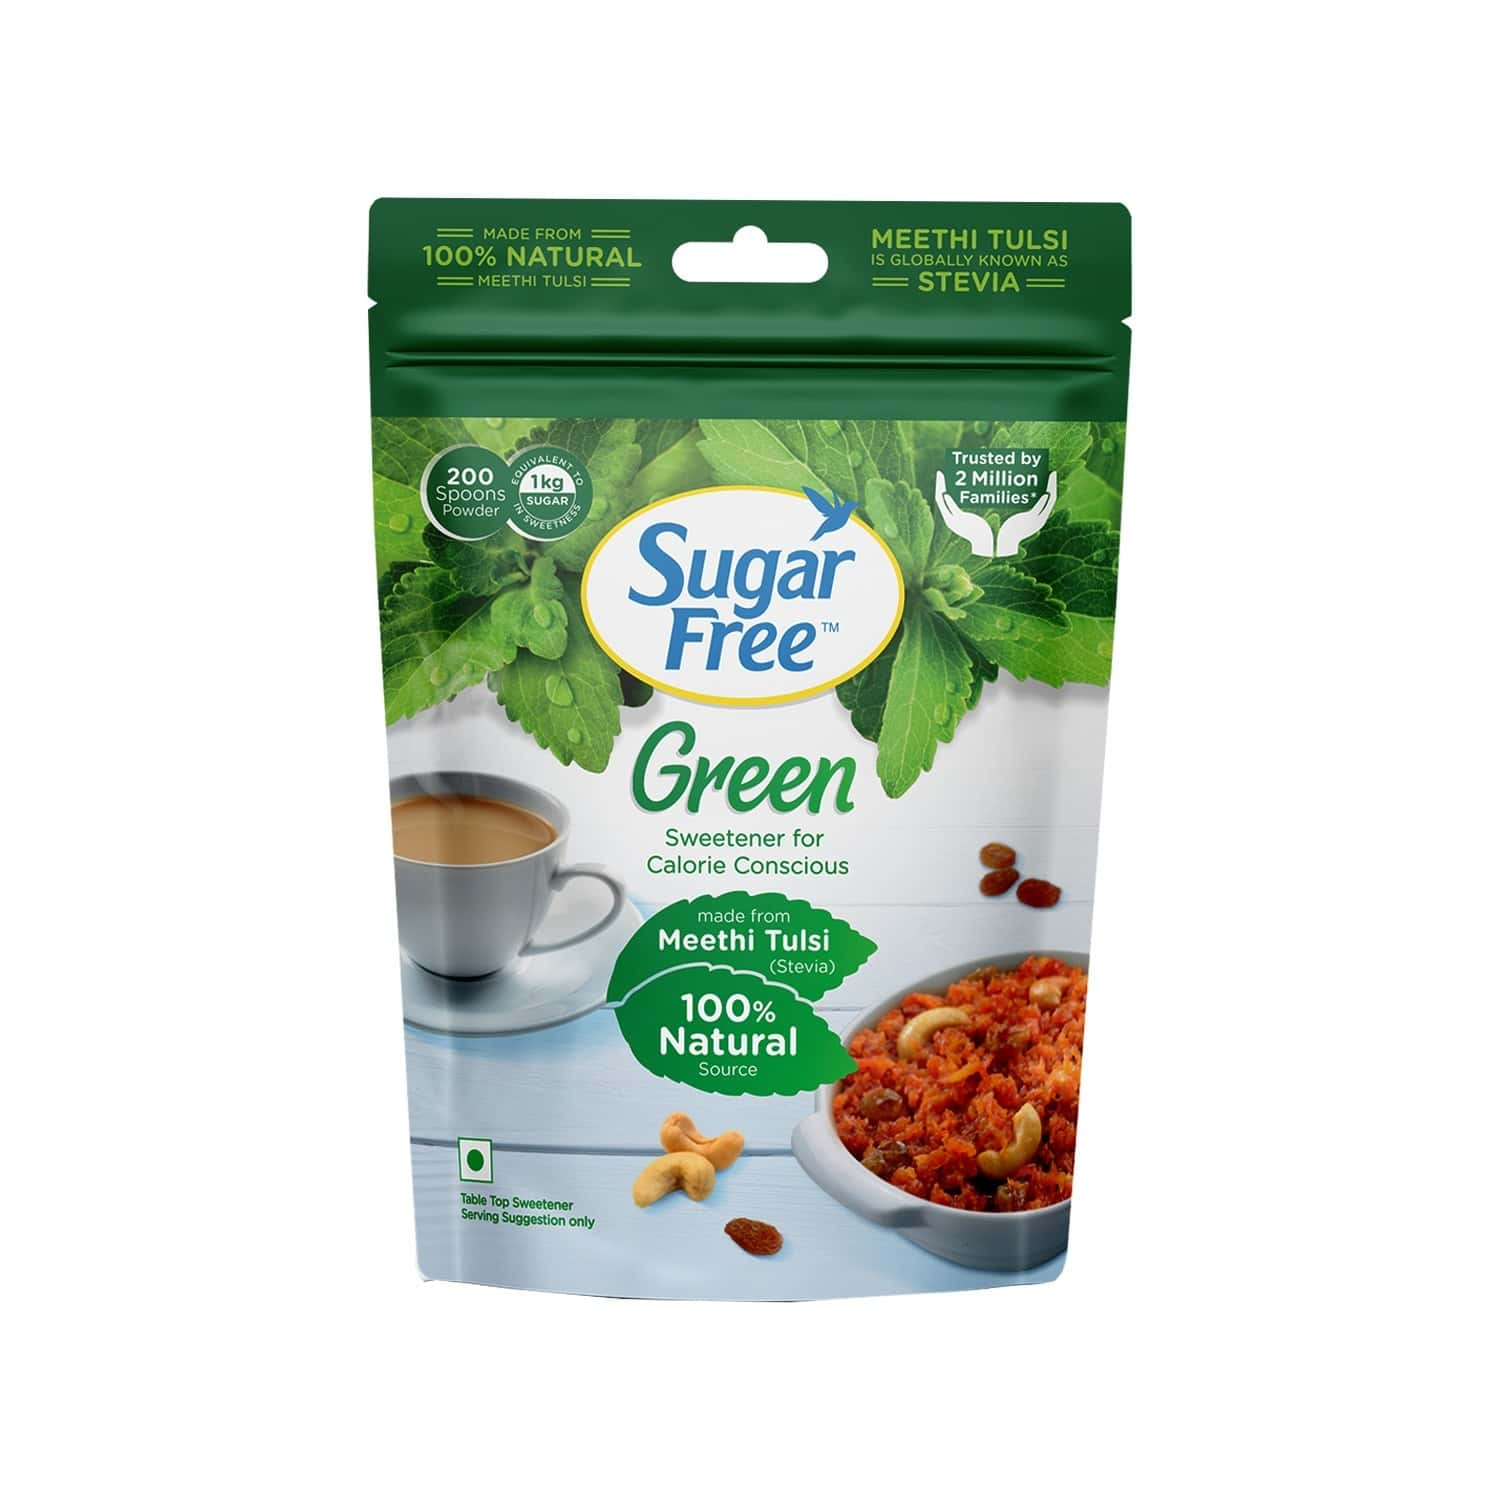 Sugar Free Green 100% Natural Made From Stevia Pouch - Pack Of 2 (200gm X 2)